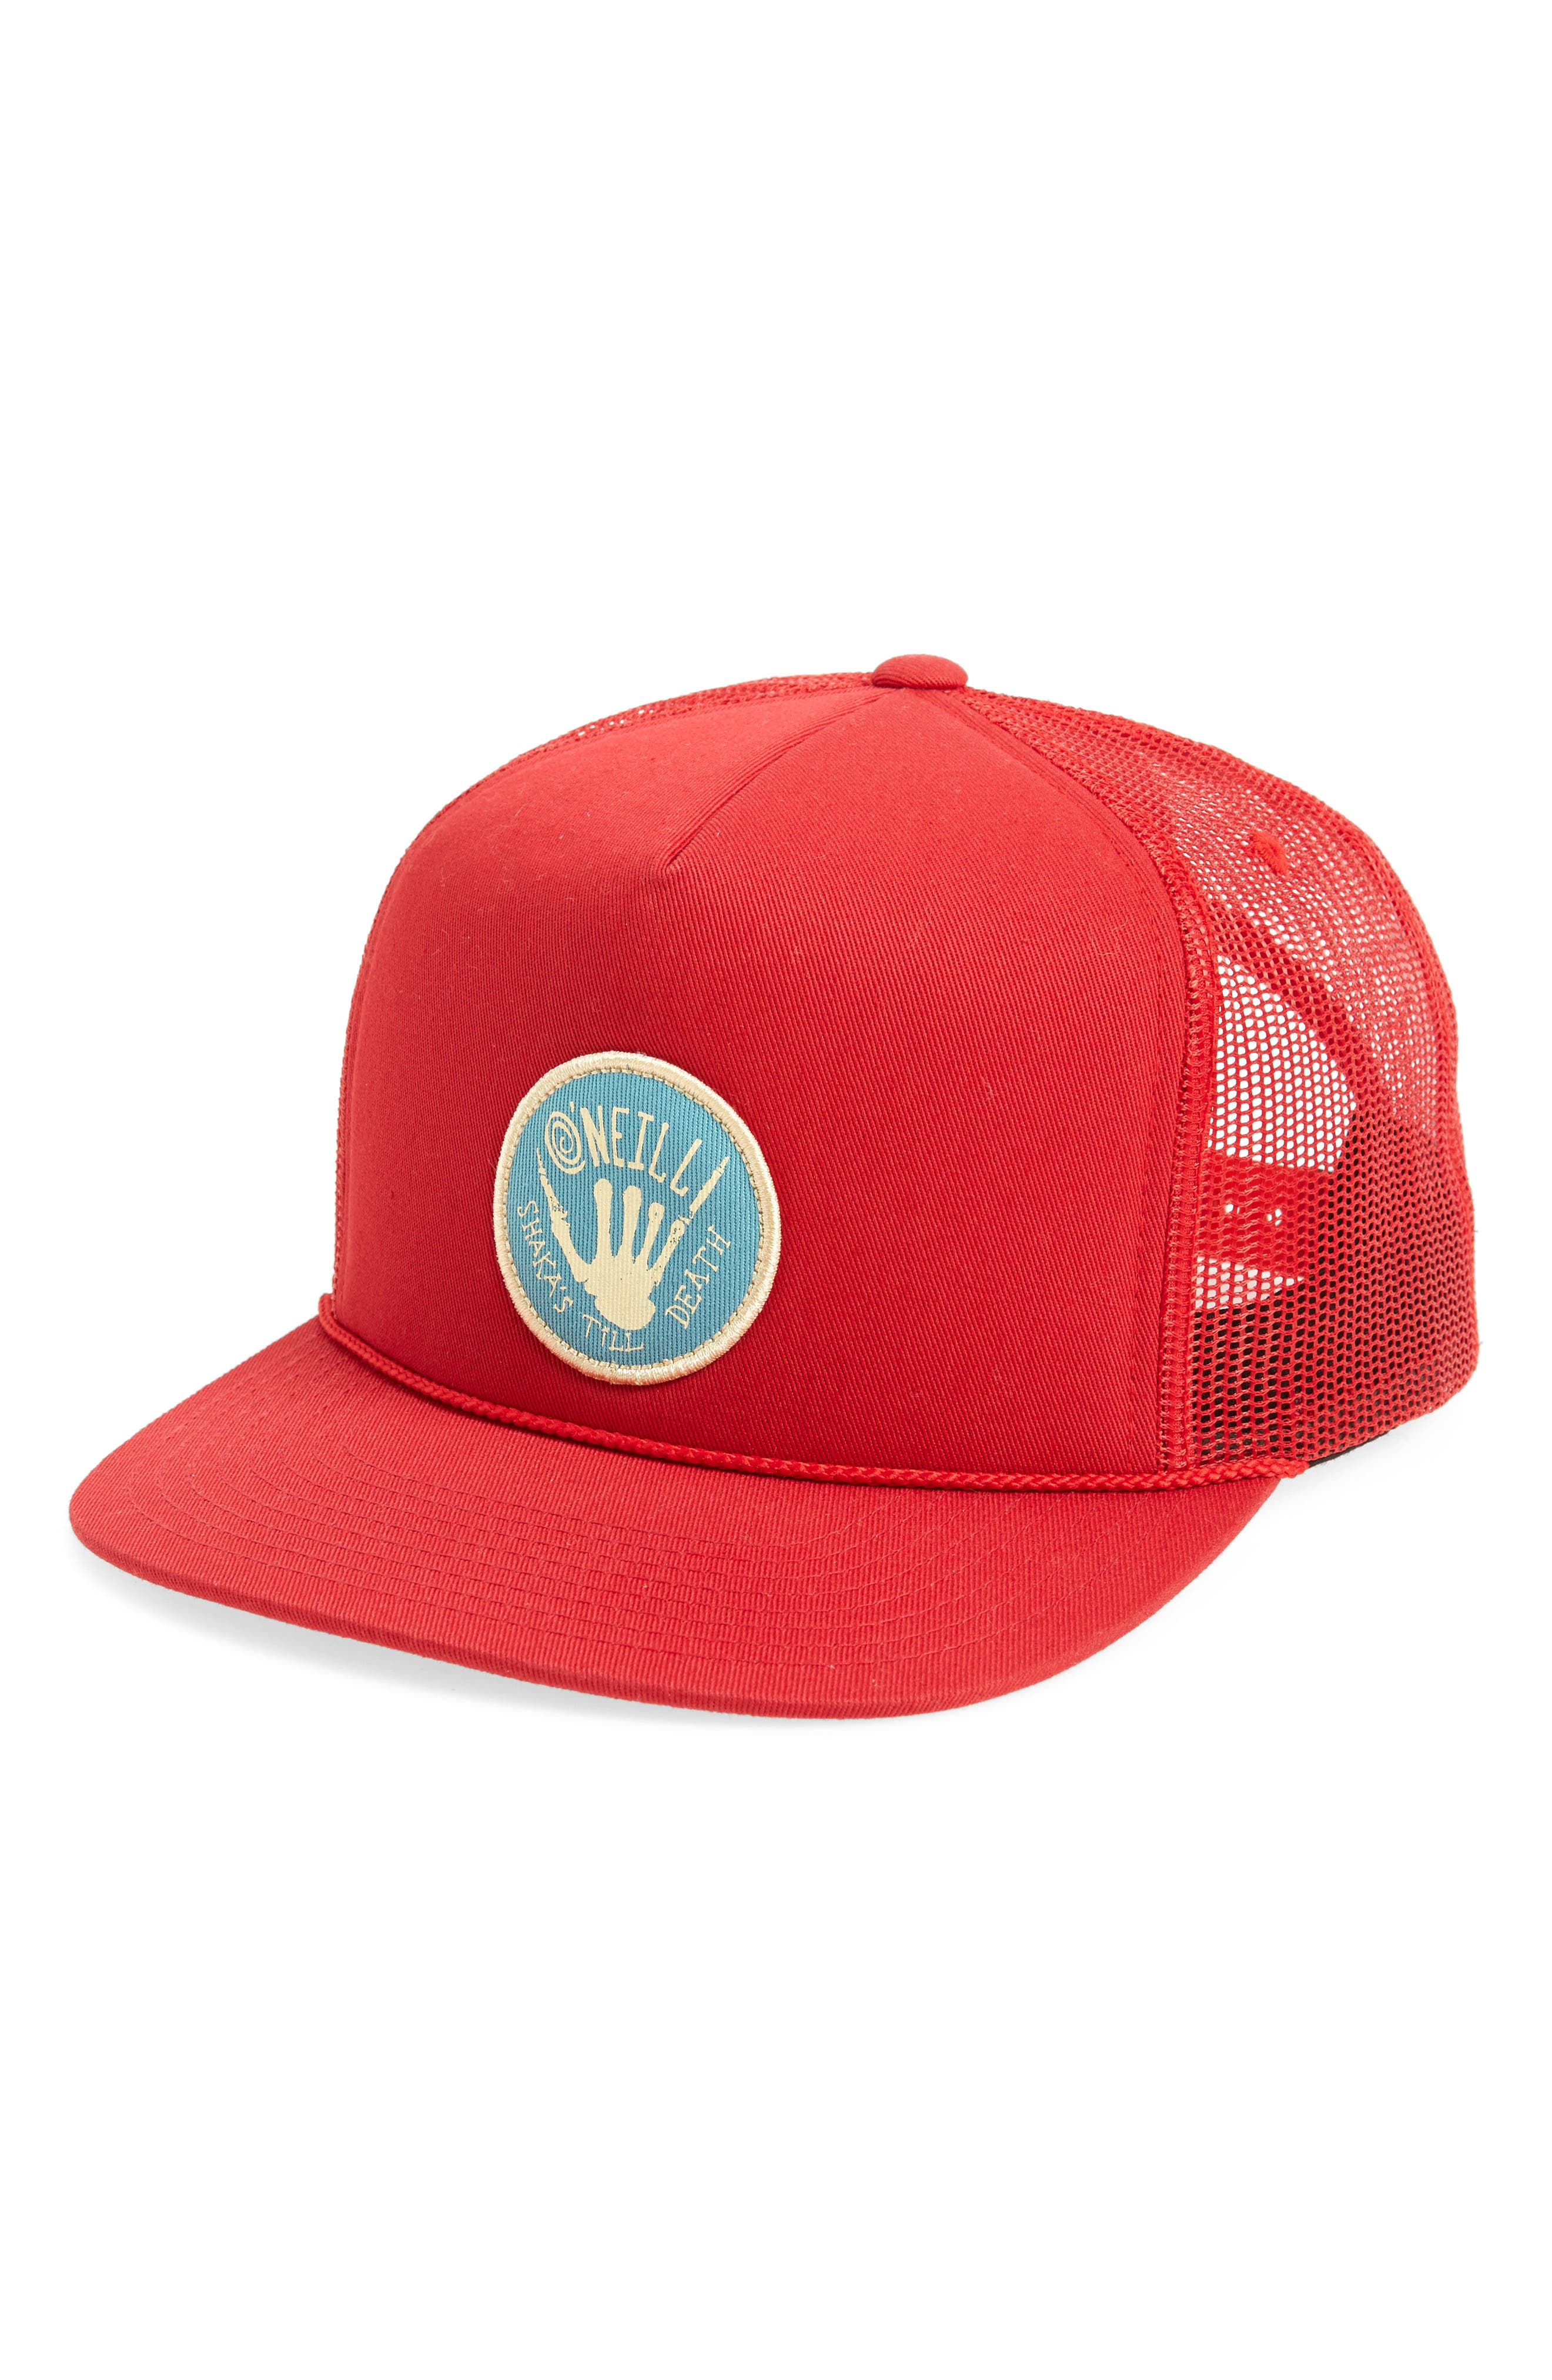 Shaka till Death Trucker Hat,                         Main,                         color, 600